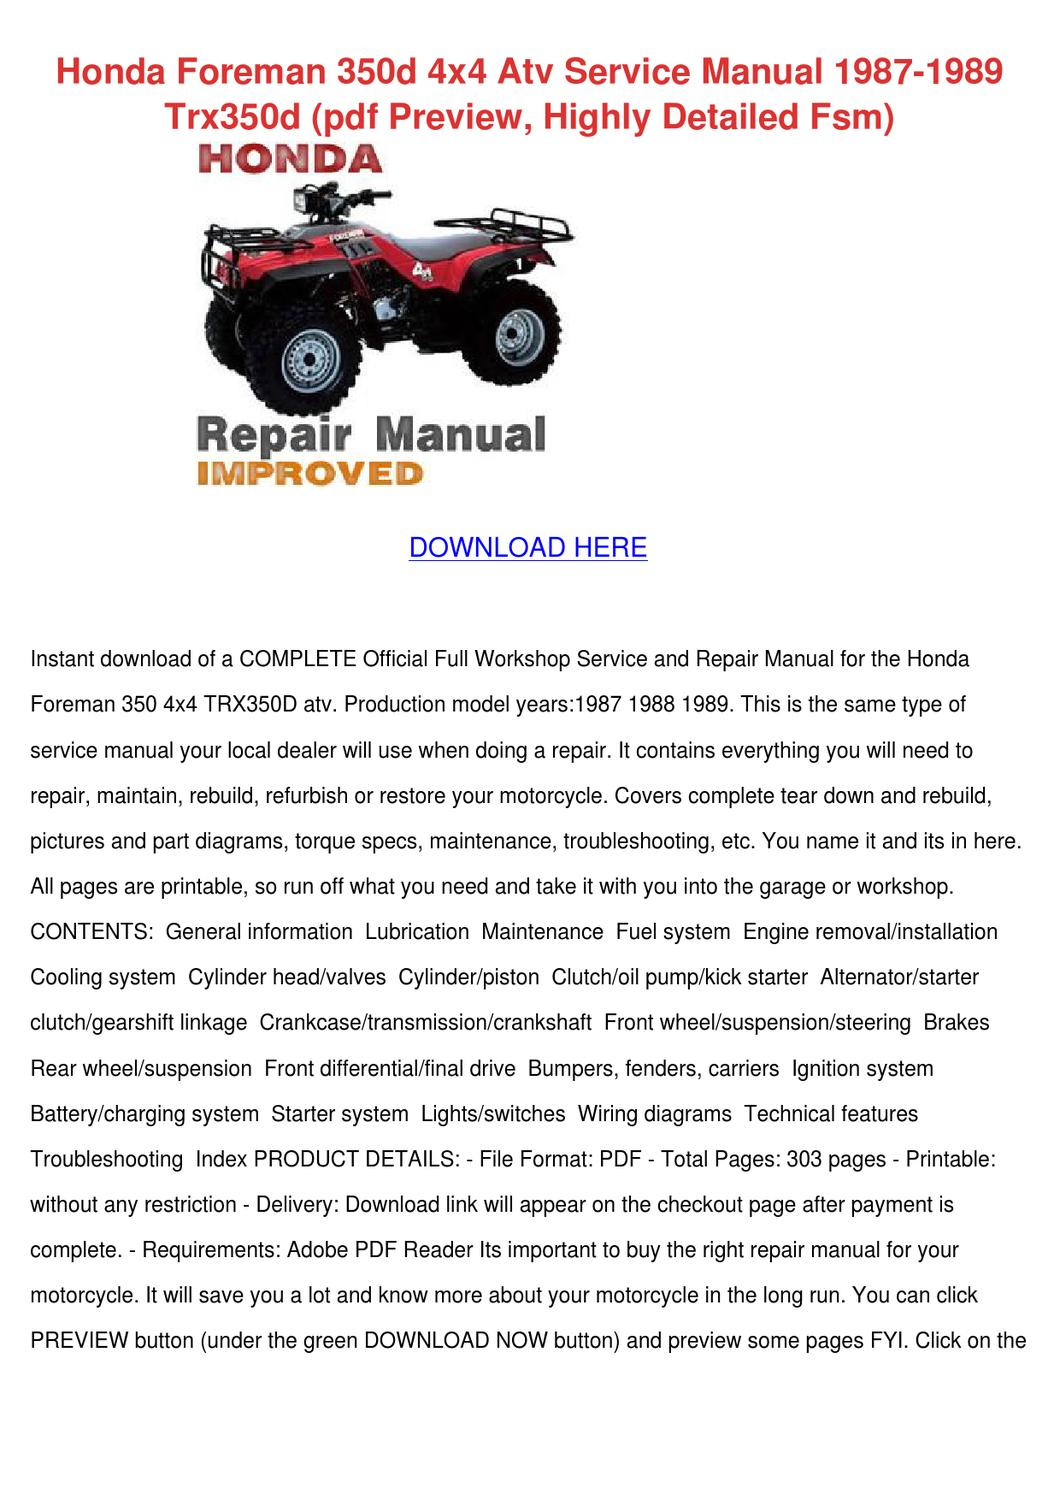 Honda Foreman 350d 4x4 Atv Service Manual 198 by LutherLaw - issuu